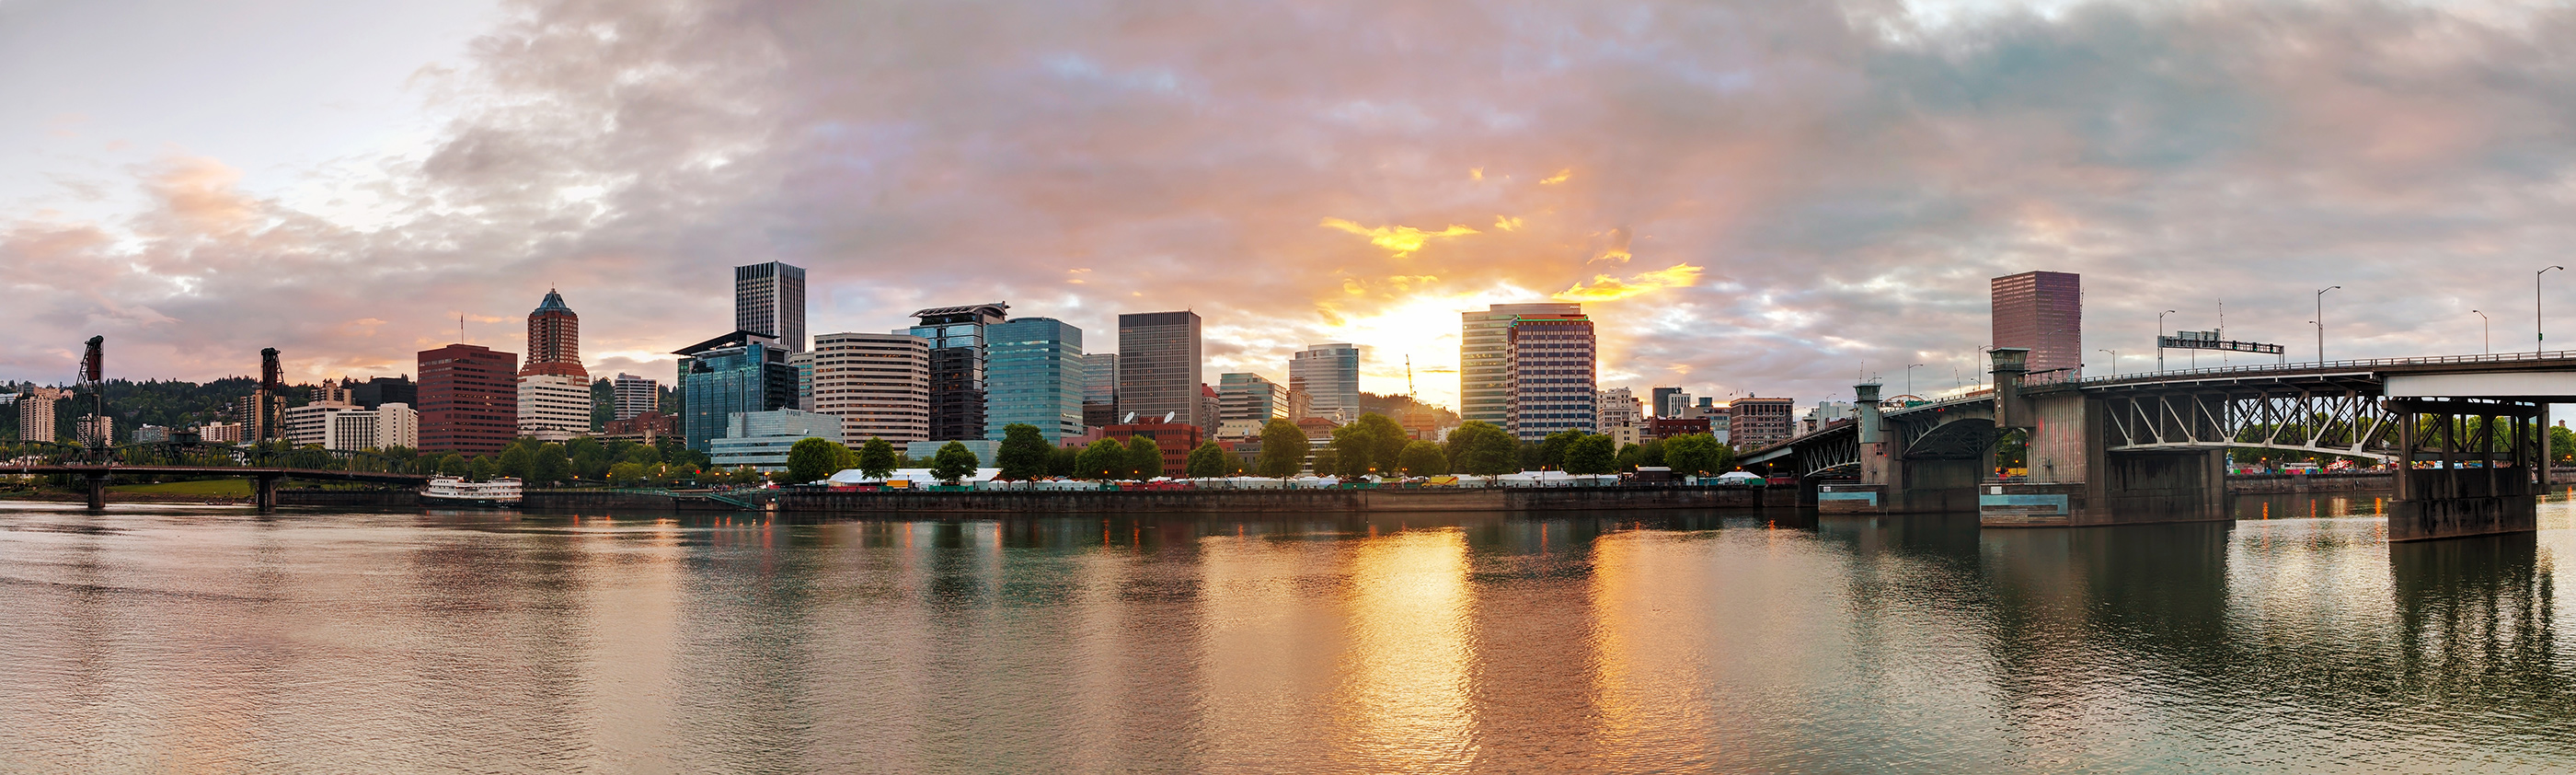 portland-oregon-skyline